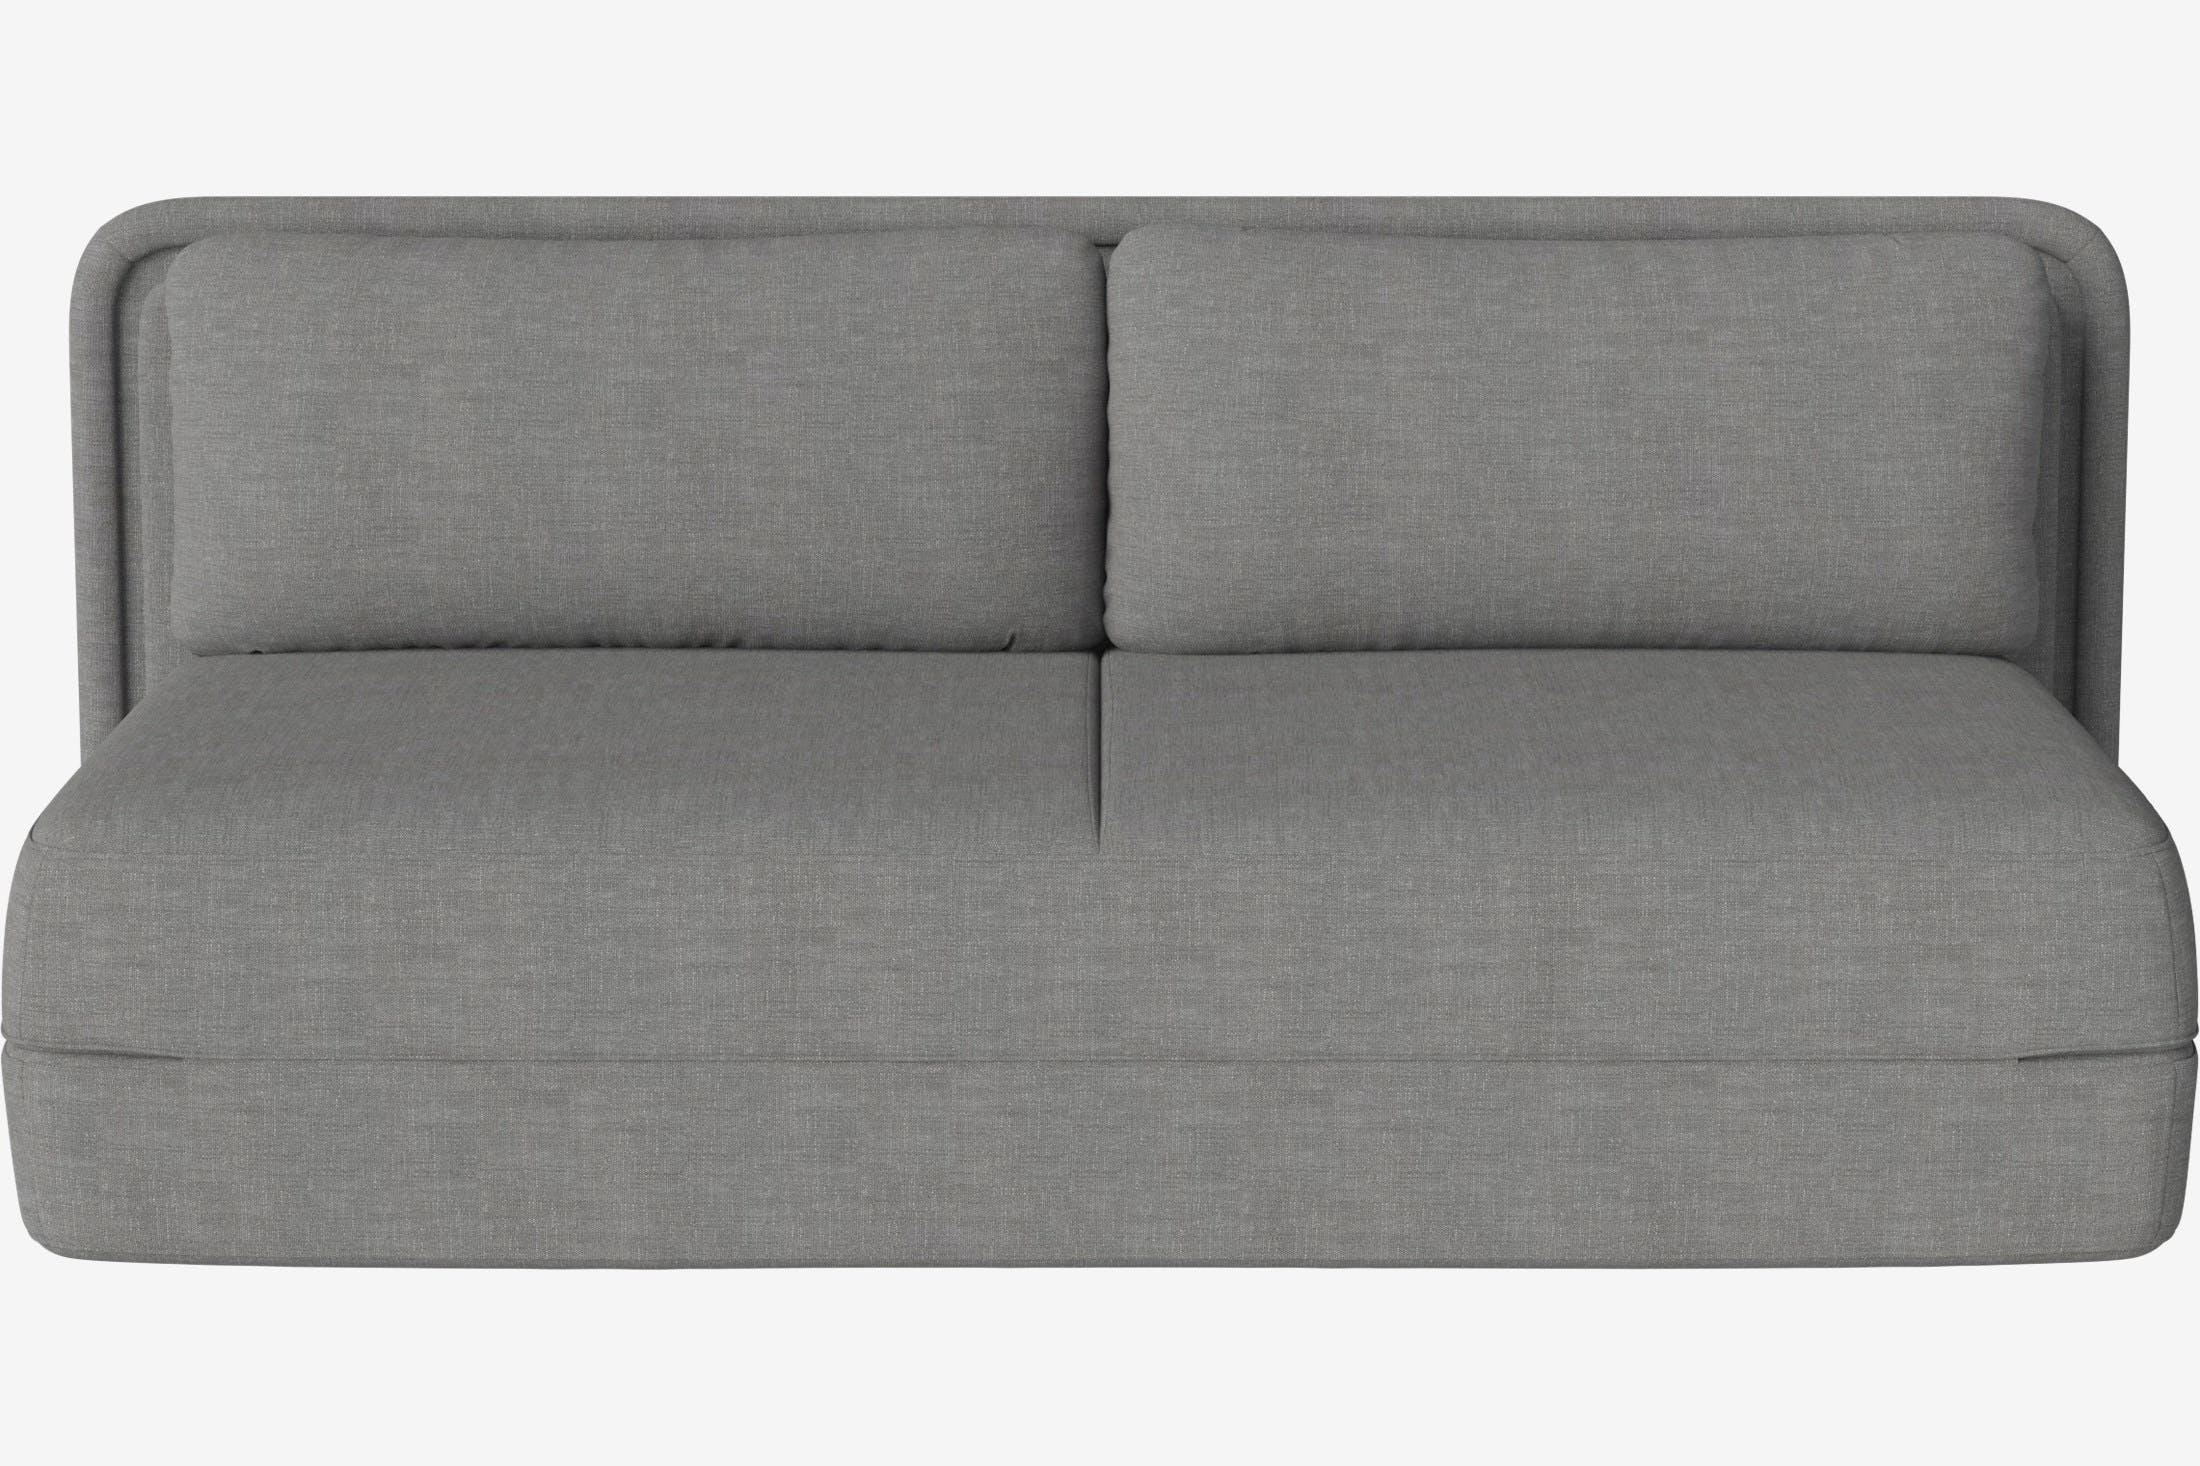 Bolia Sofie 2 Seater Sofa Bed